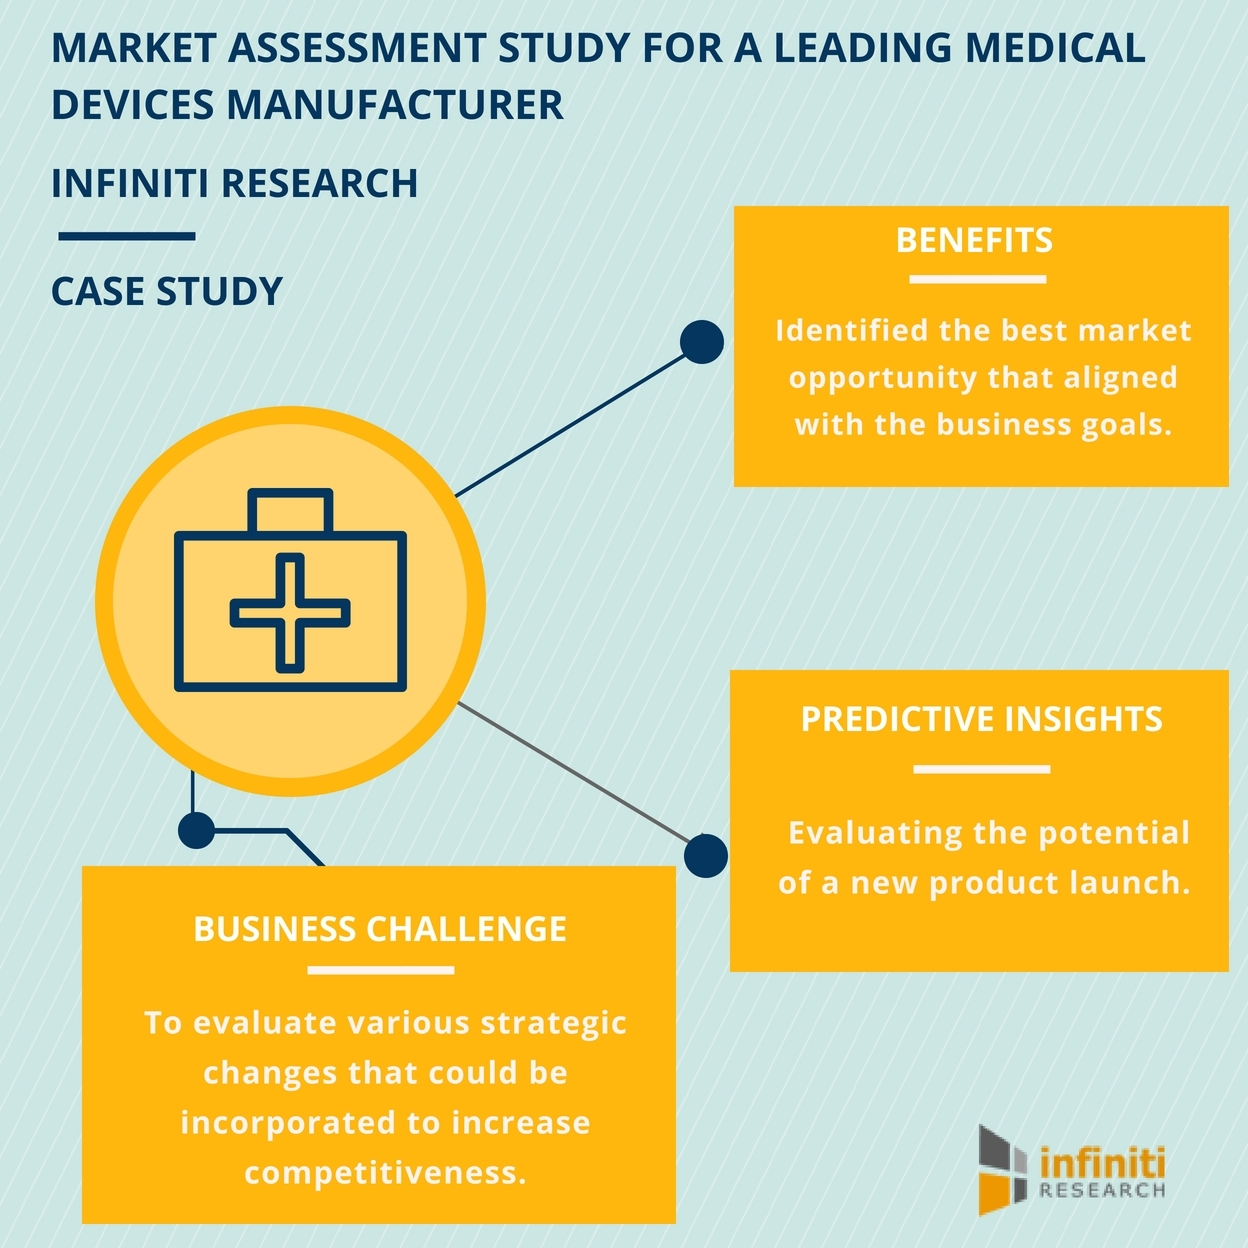 Market Assessment Study for a Medical Devices Manufacturer Helped ...